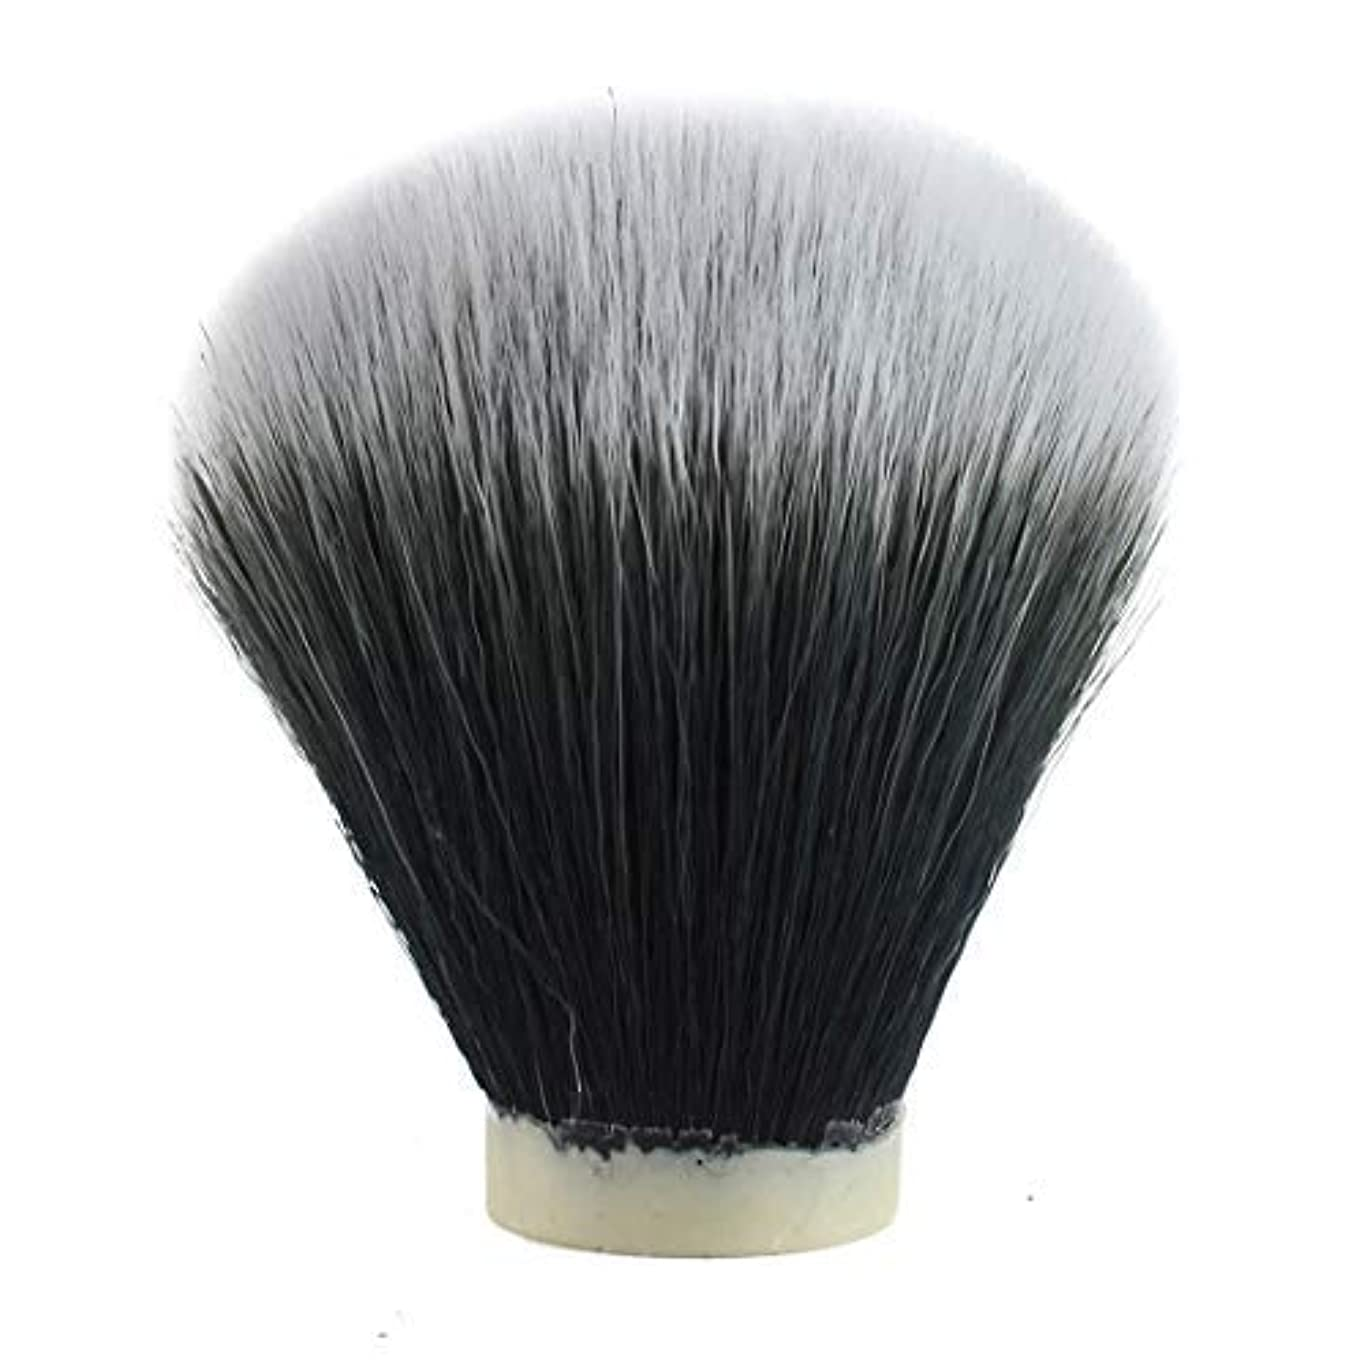 Tuxedo Synthetic Hair Brush Shaving Knot (24mm) [並行輸入品]